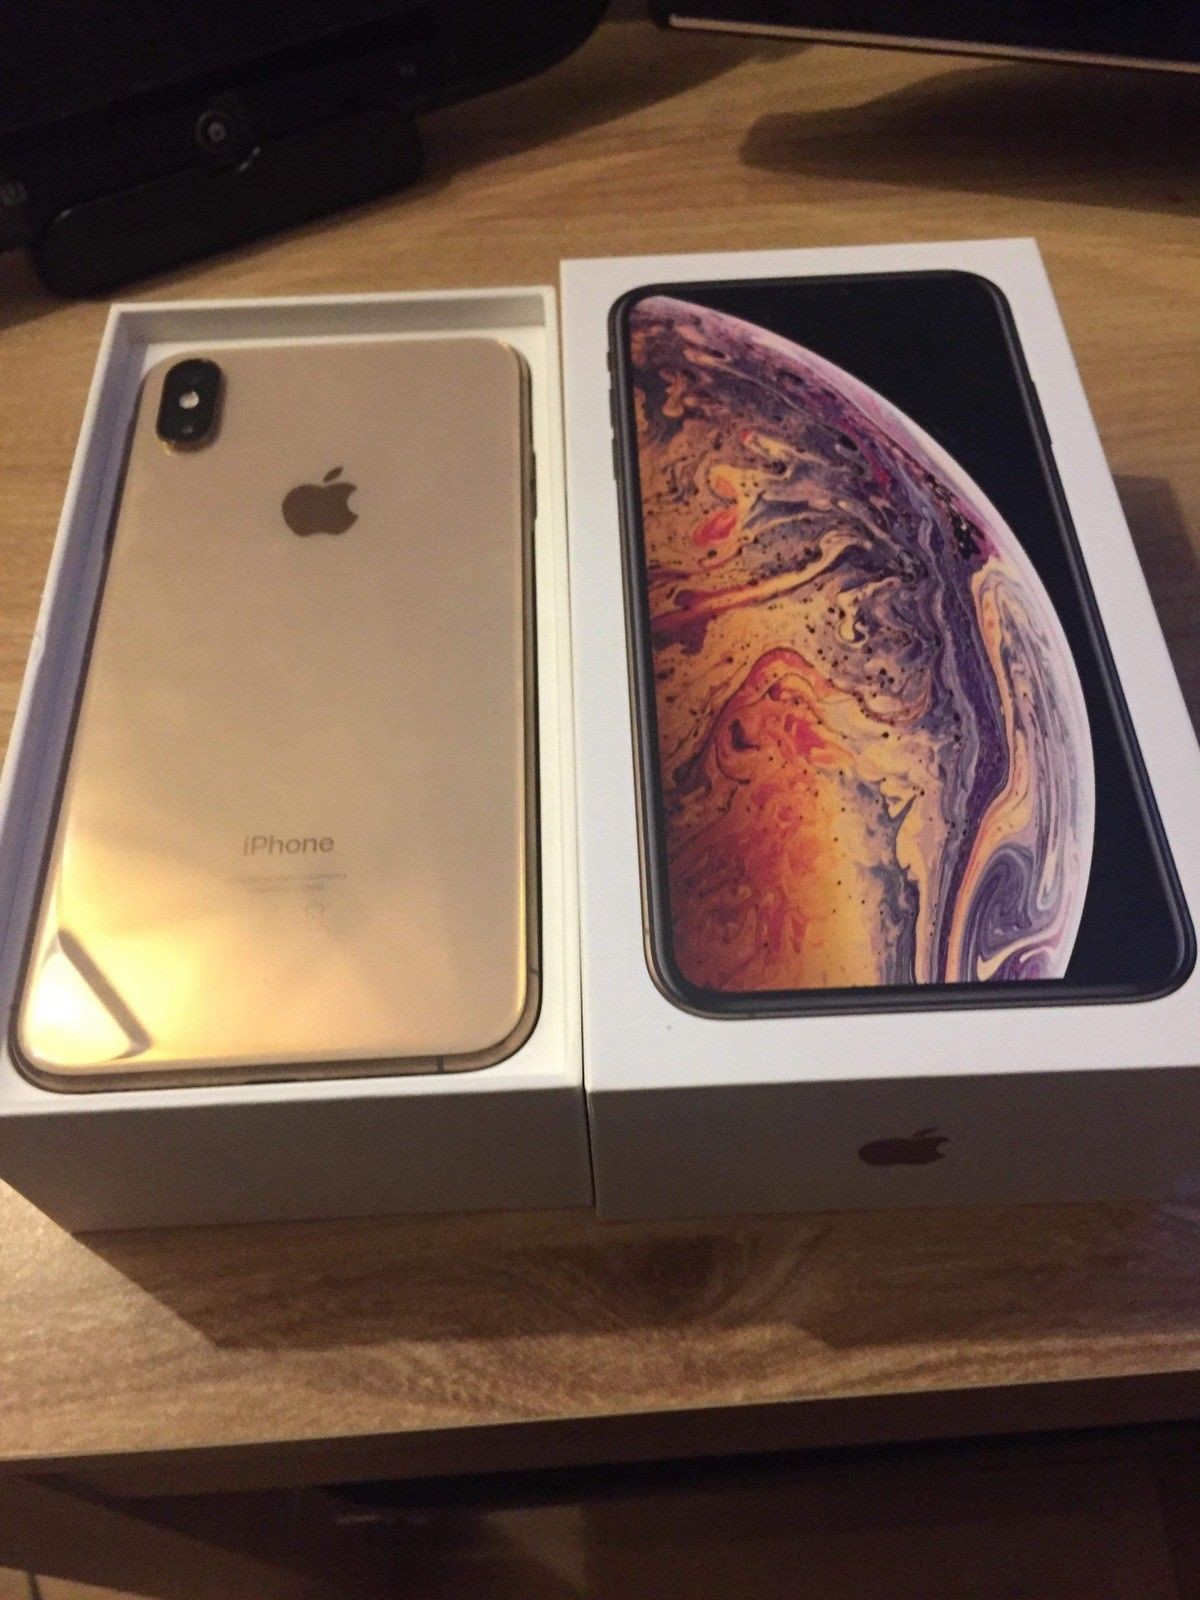 Apple iPhone Xs 64gb €400 iPhone Xs Max 64gb € - Great Britain - +447451238998